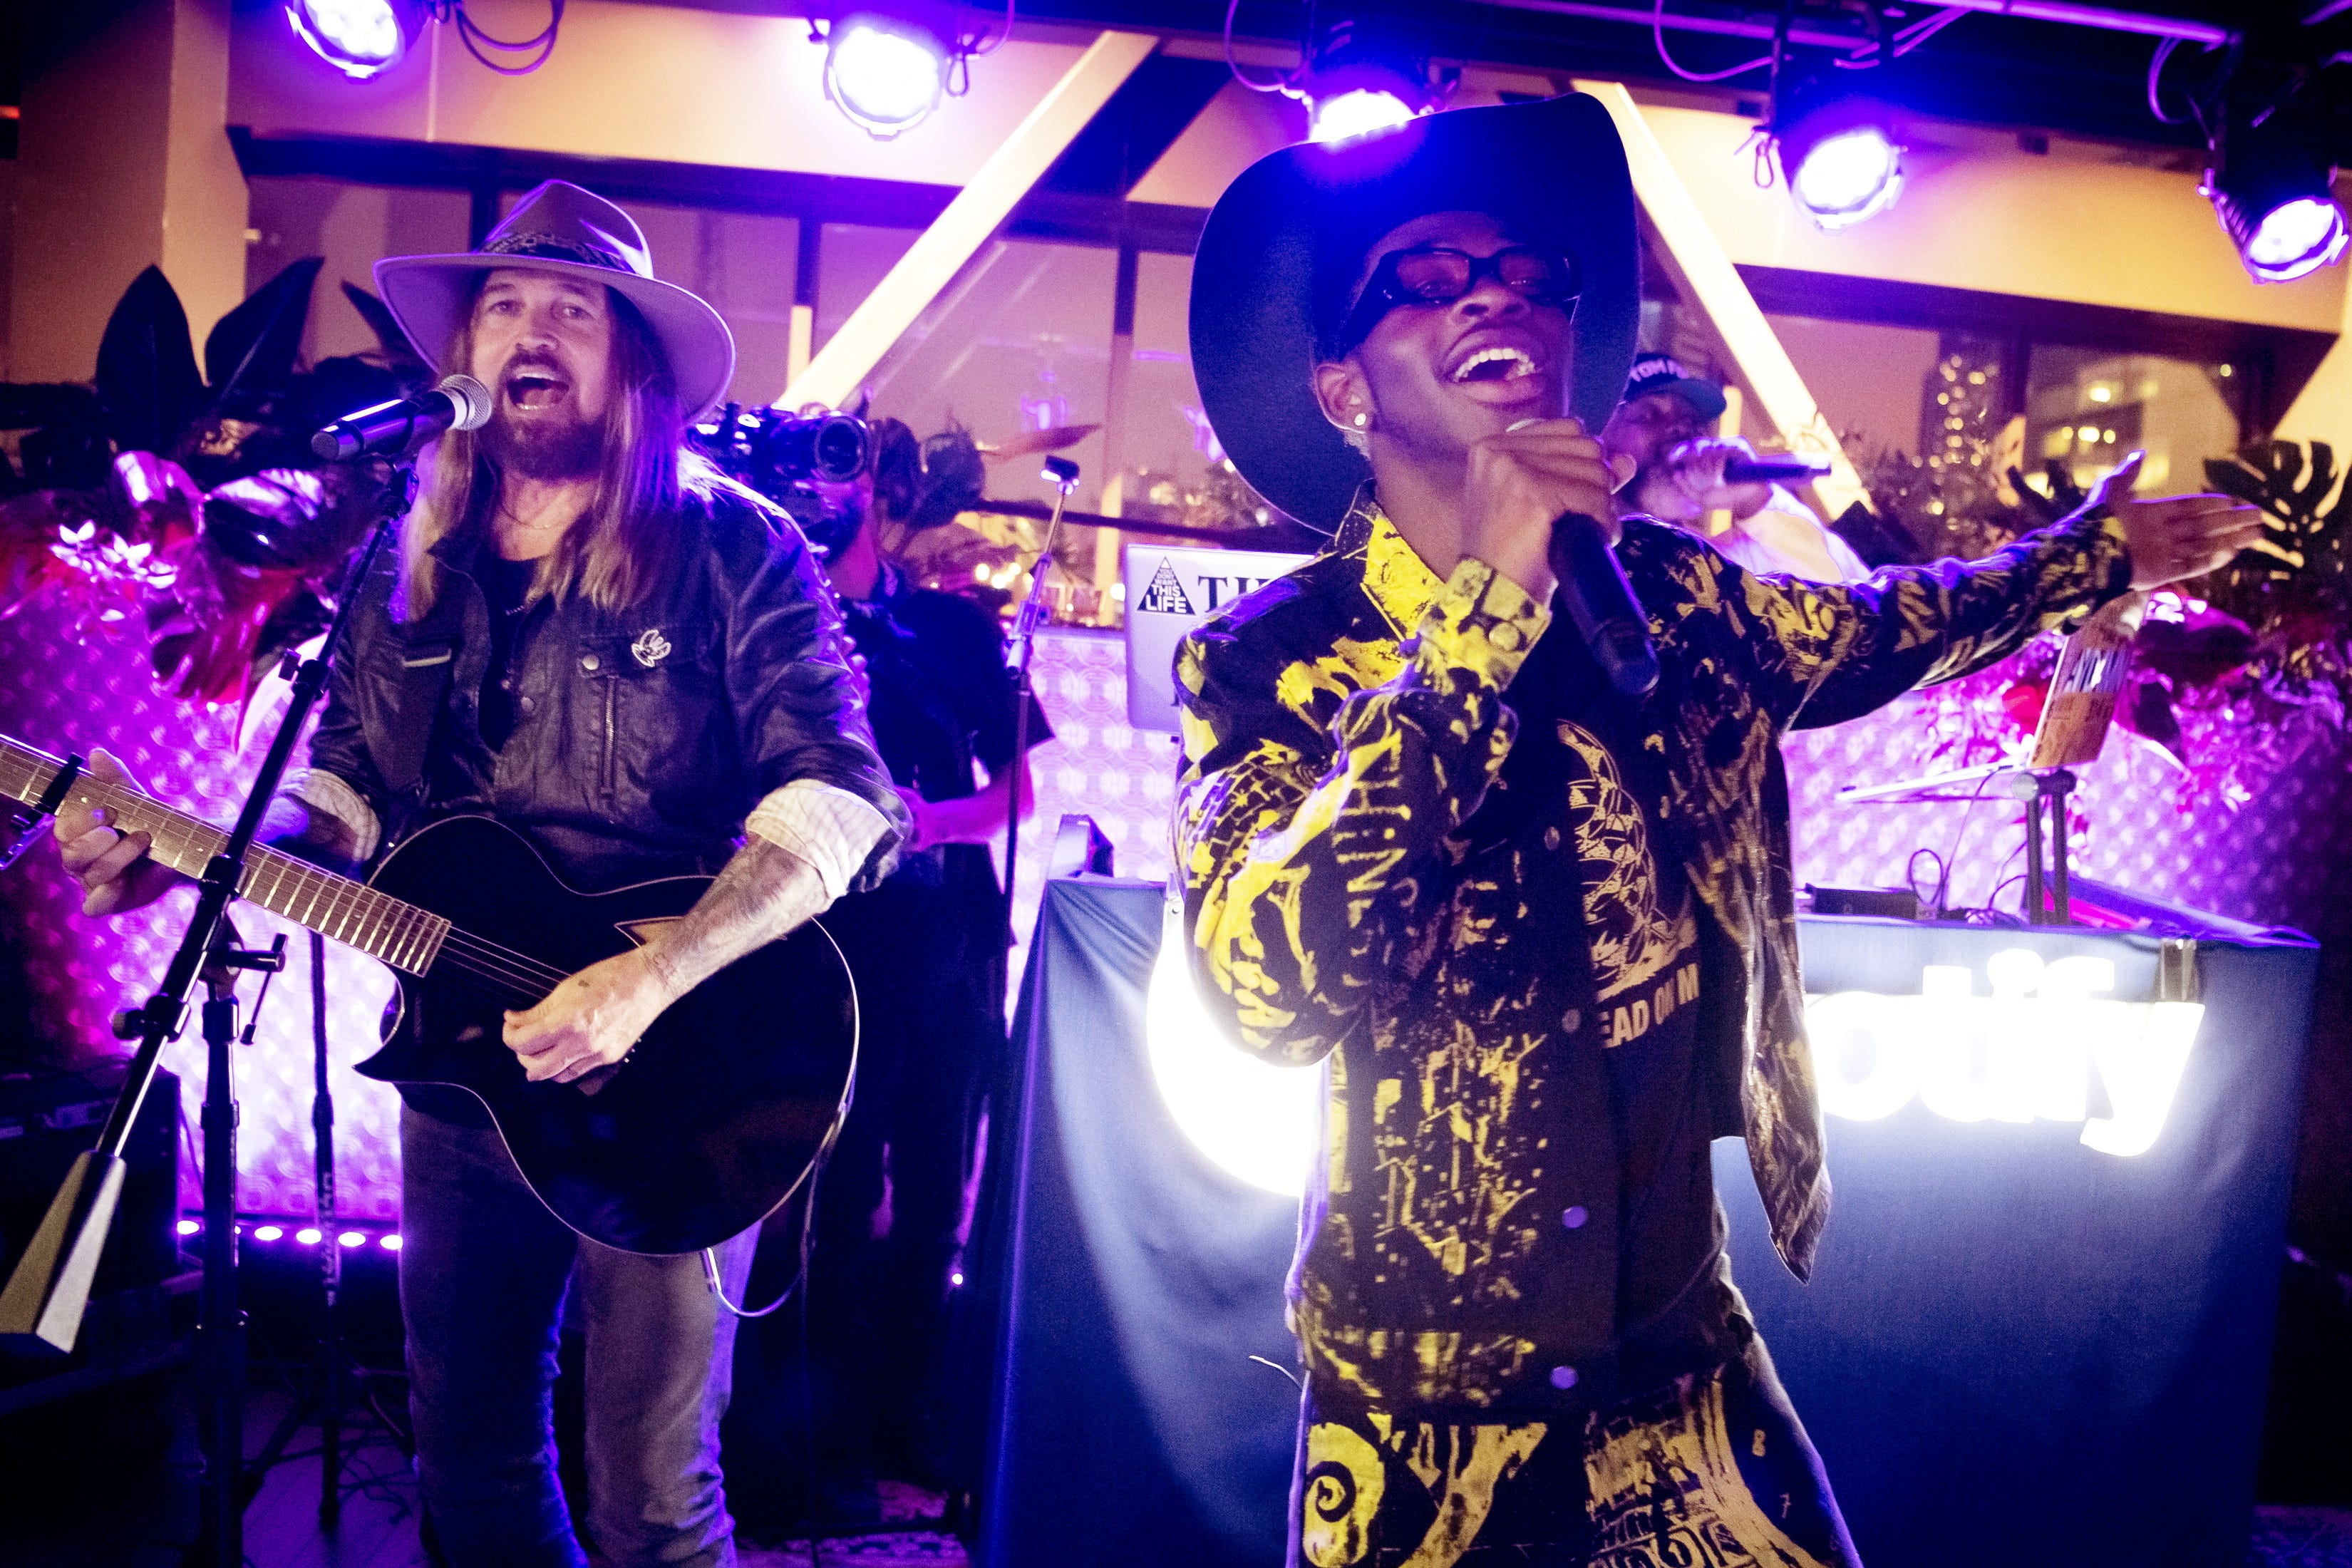 Old Town Road becomes the second country single to reach top-selling Diamond status